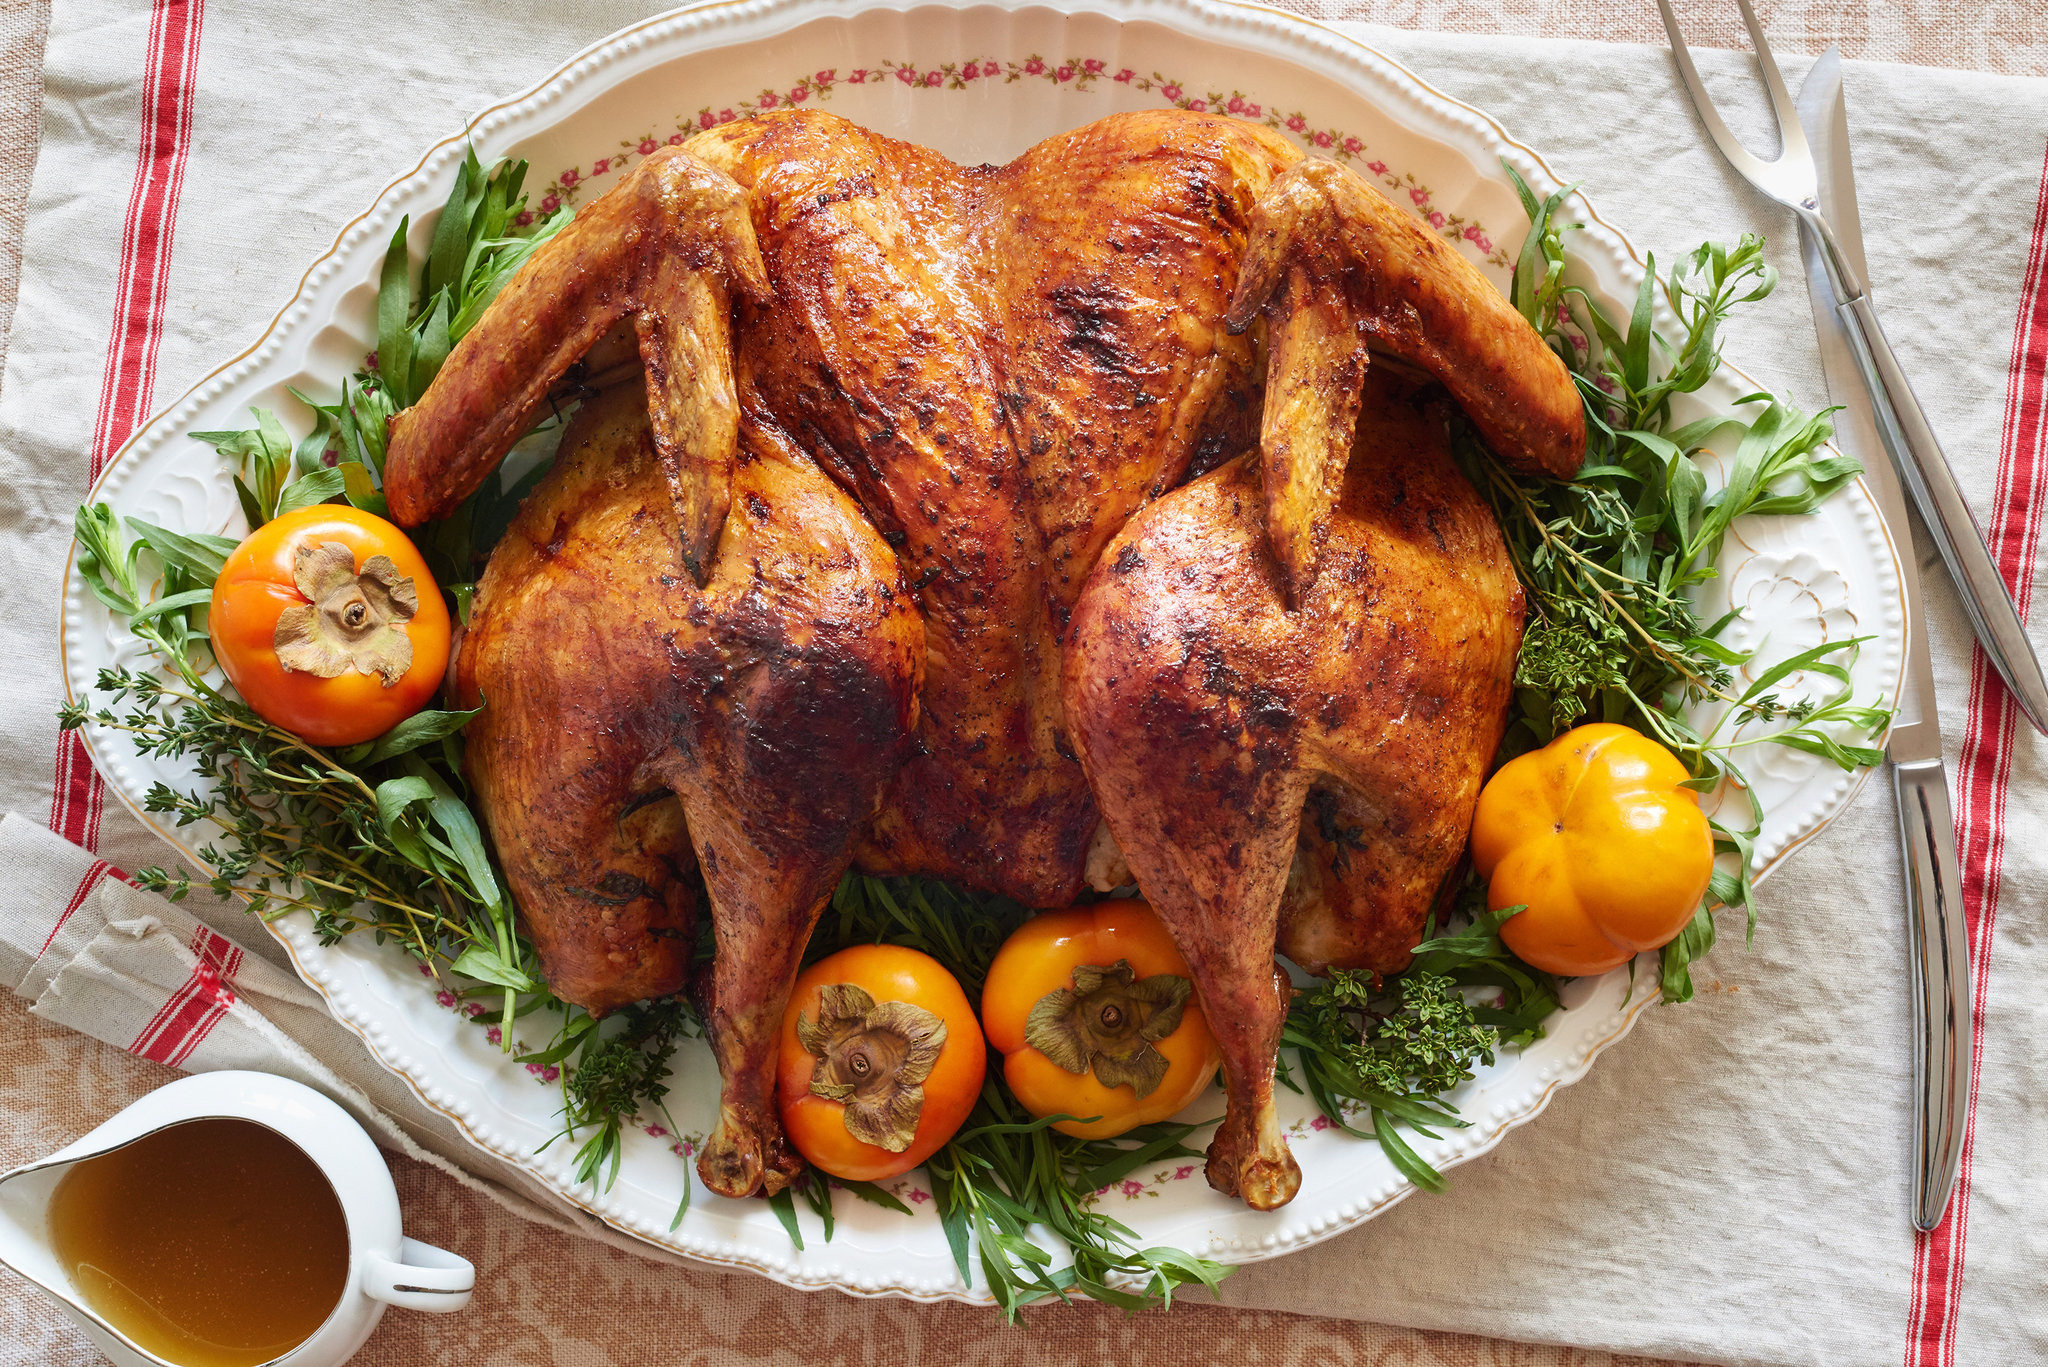 Roast Turkey Recipes Thanksgiving  45 Minute Roast Turkey Recipe NYT Cooking